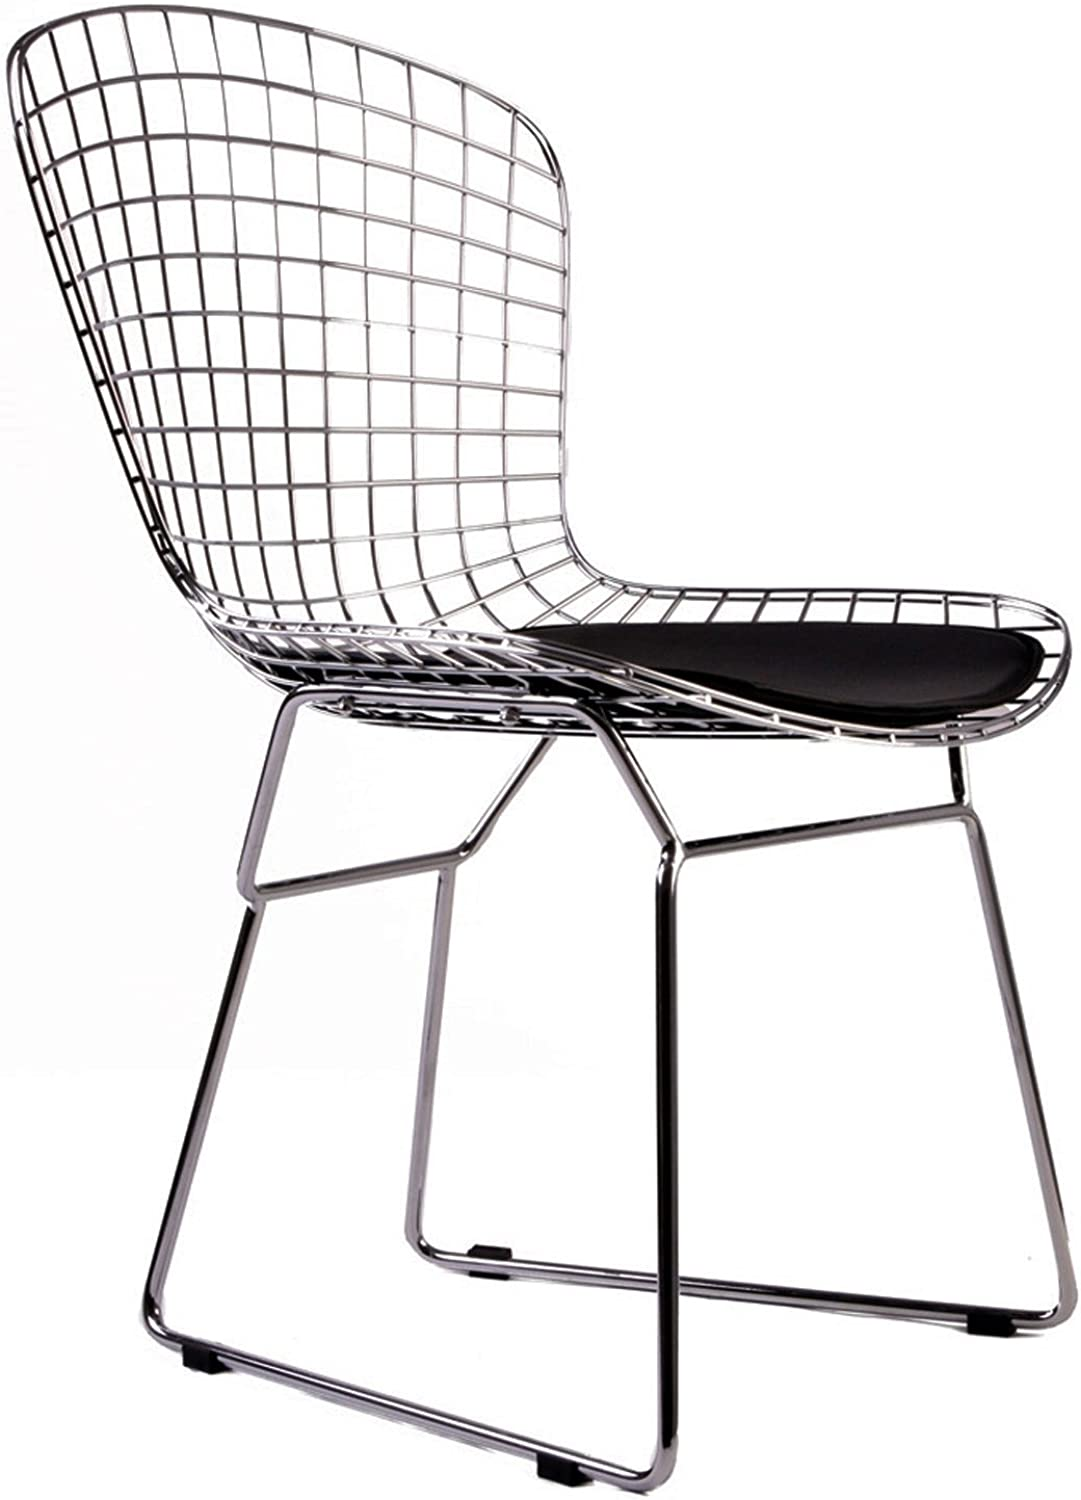 Meubles House S2-MC-024-B Mid-Century Modern Chrome Wire Bertoiastyle Kids Chair Pad (Set of Two), Black